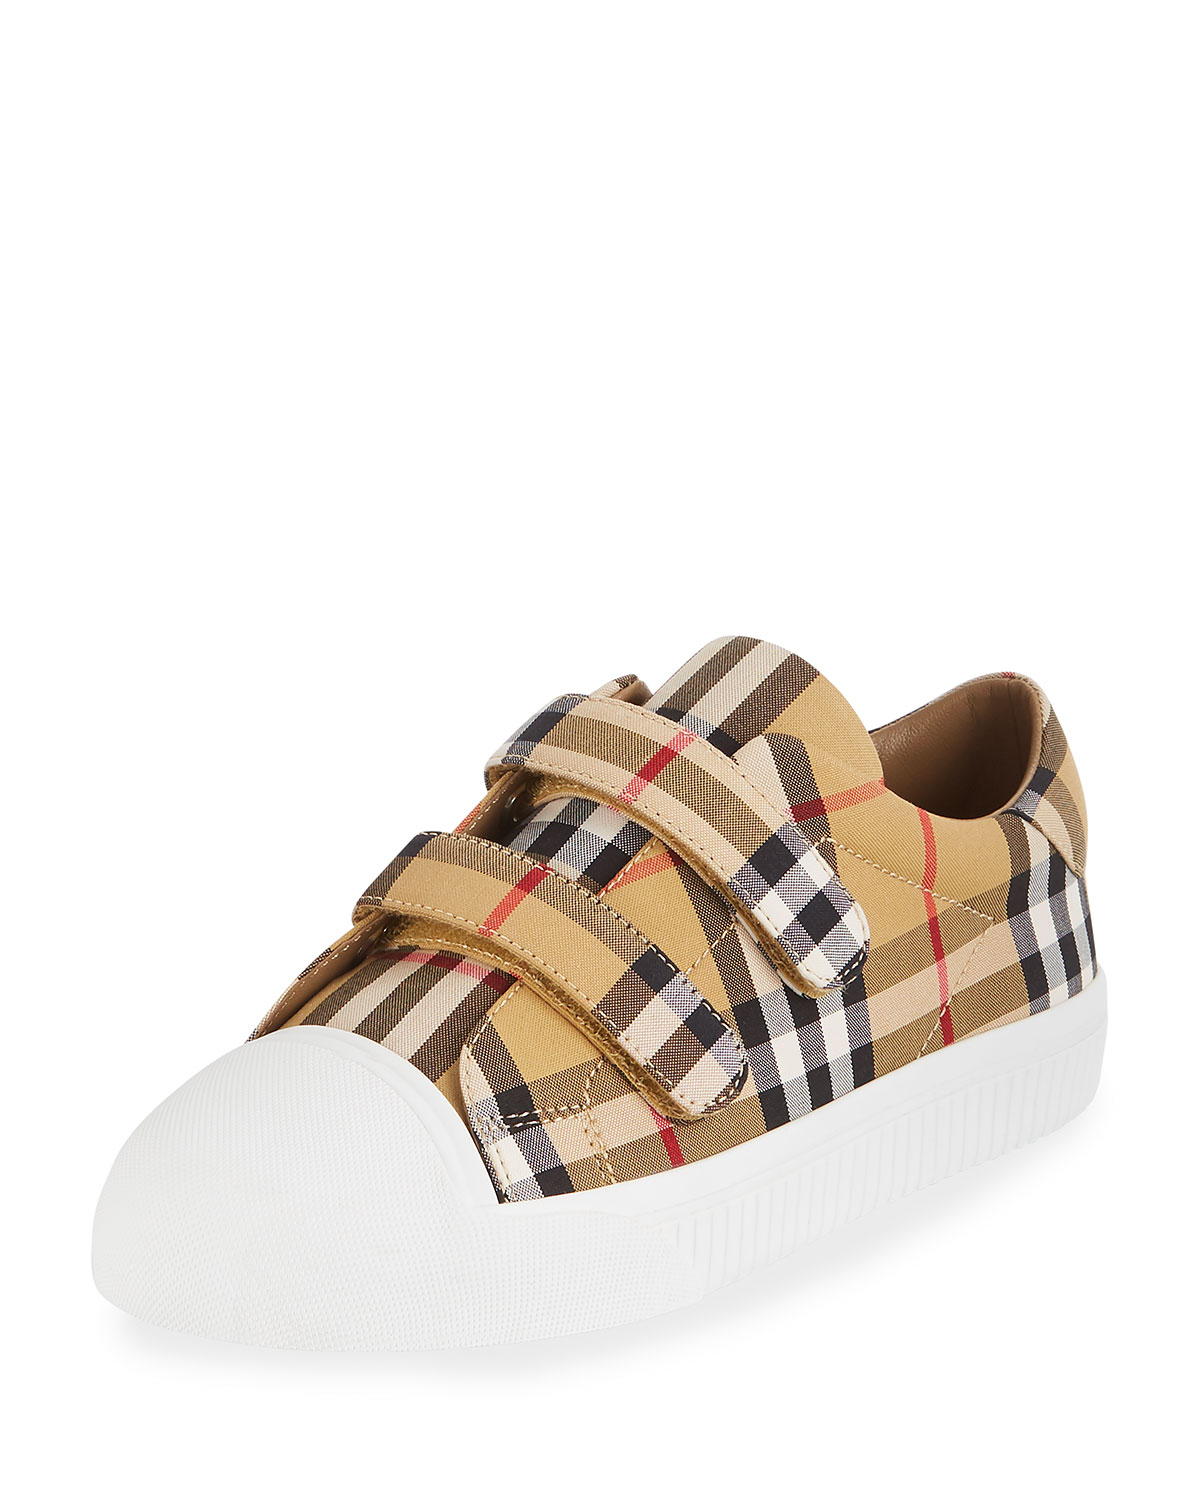 7bdb1a0a4b68 Burberry Belside Vintage Check Canvas Sneakers